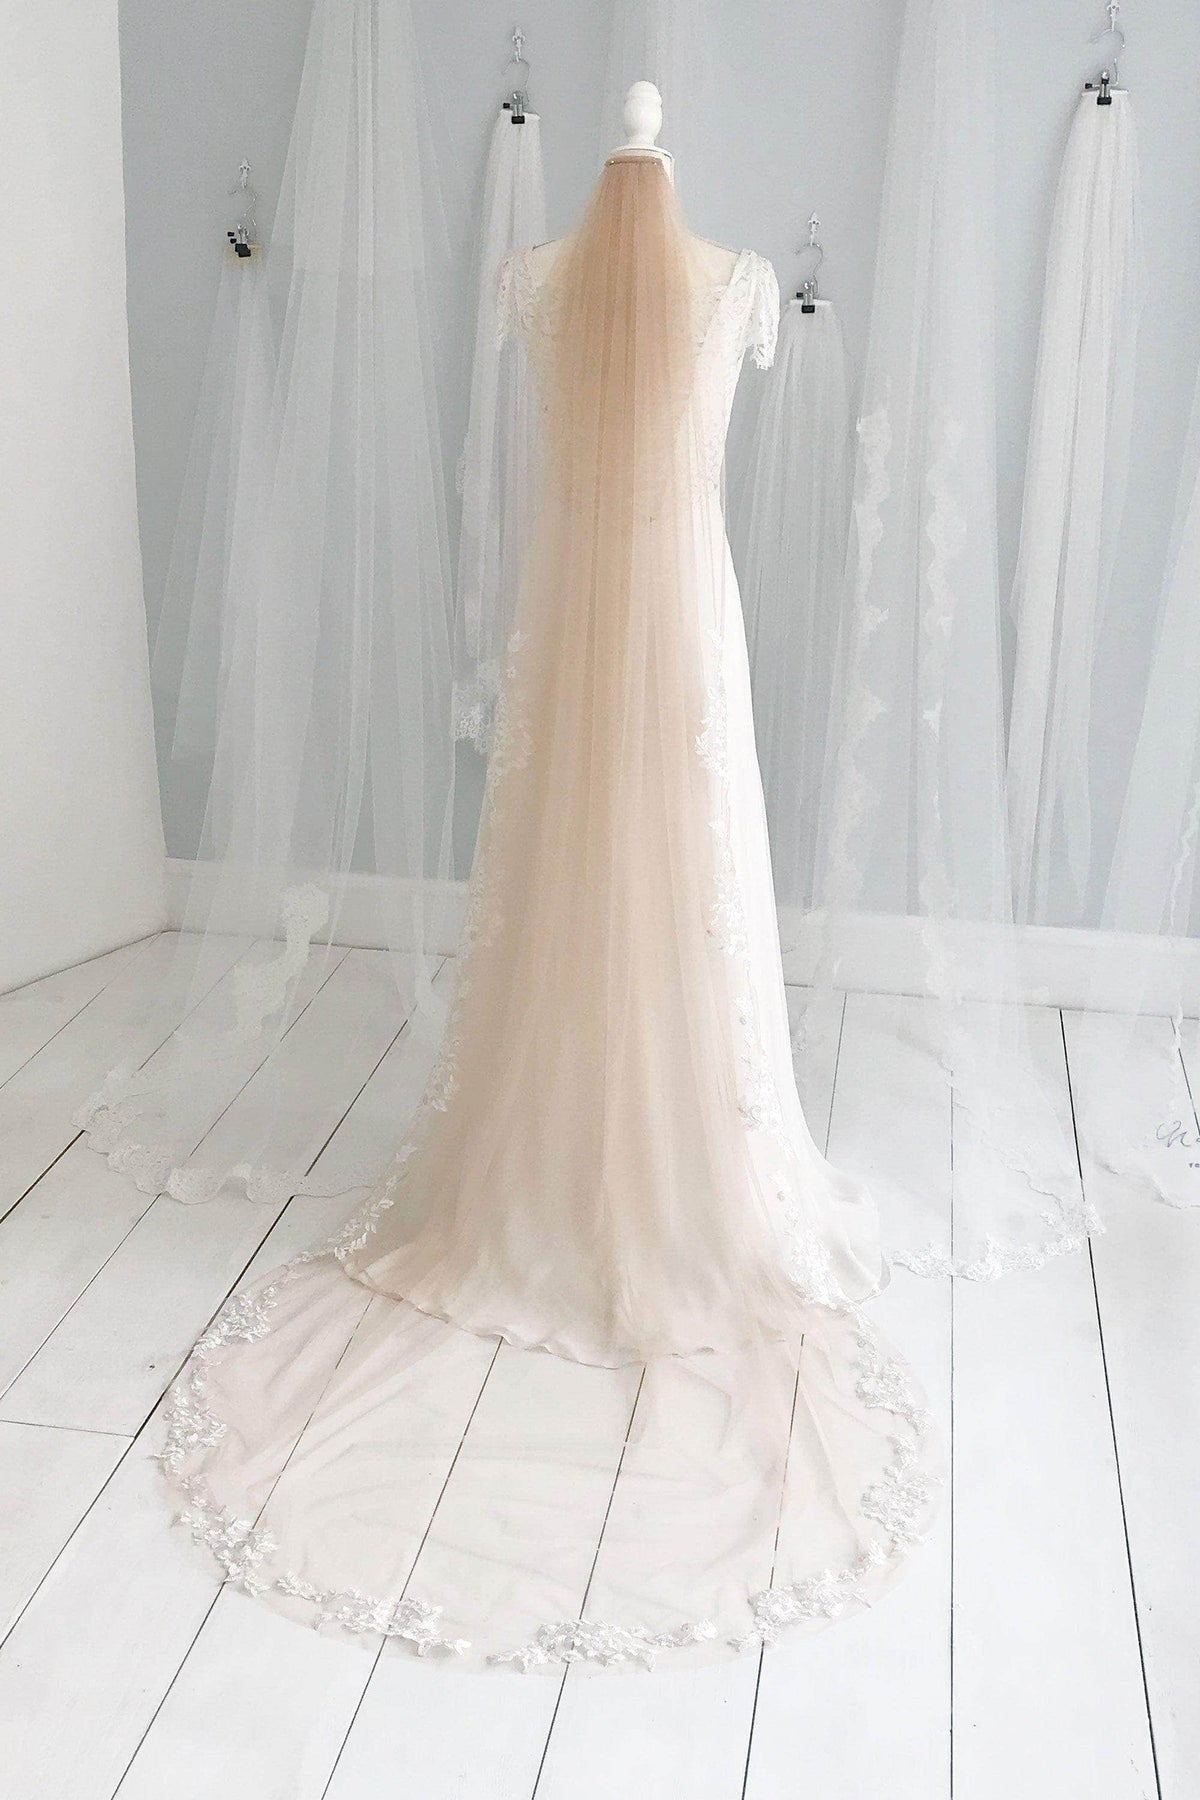 bespoke custom wedding veil